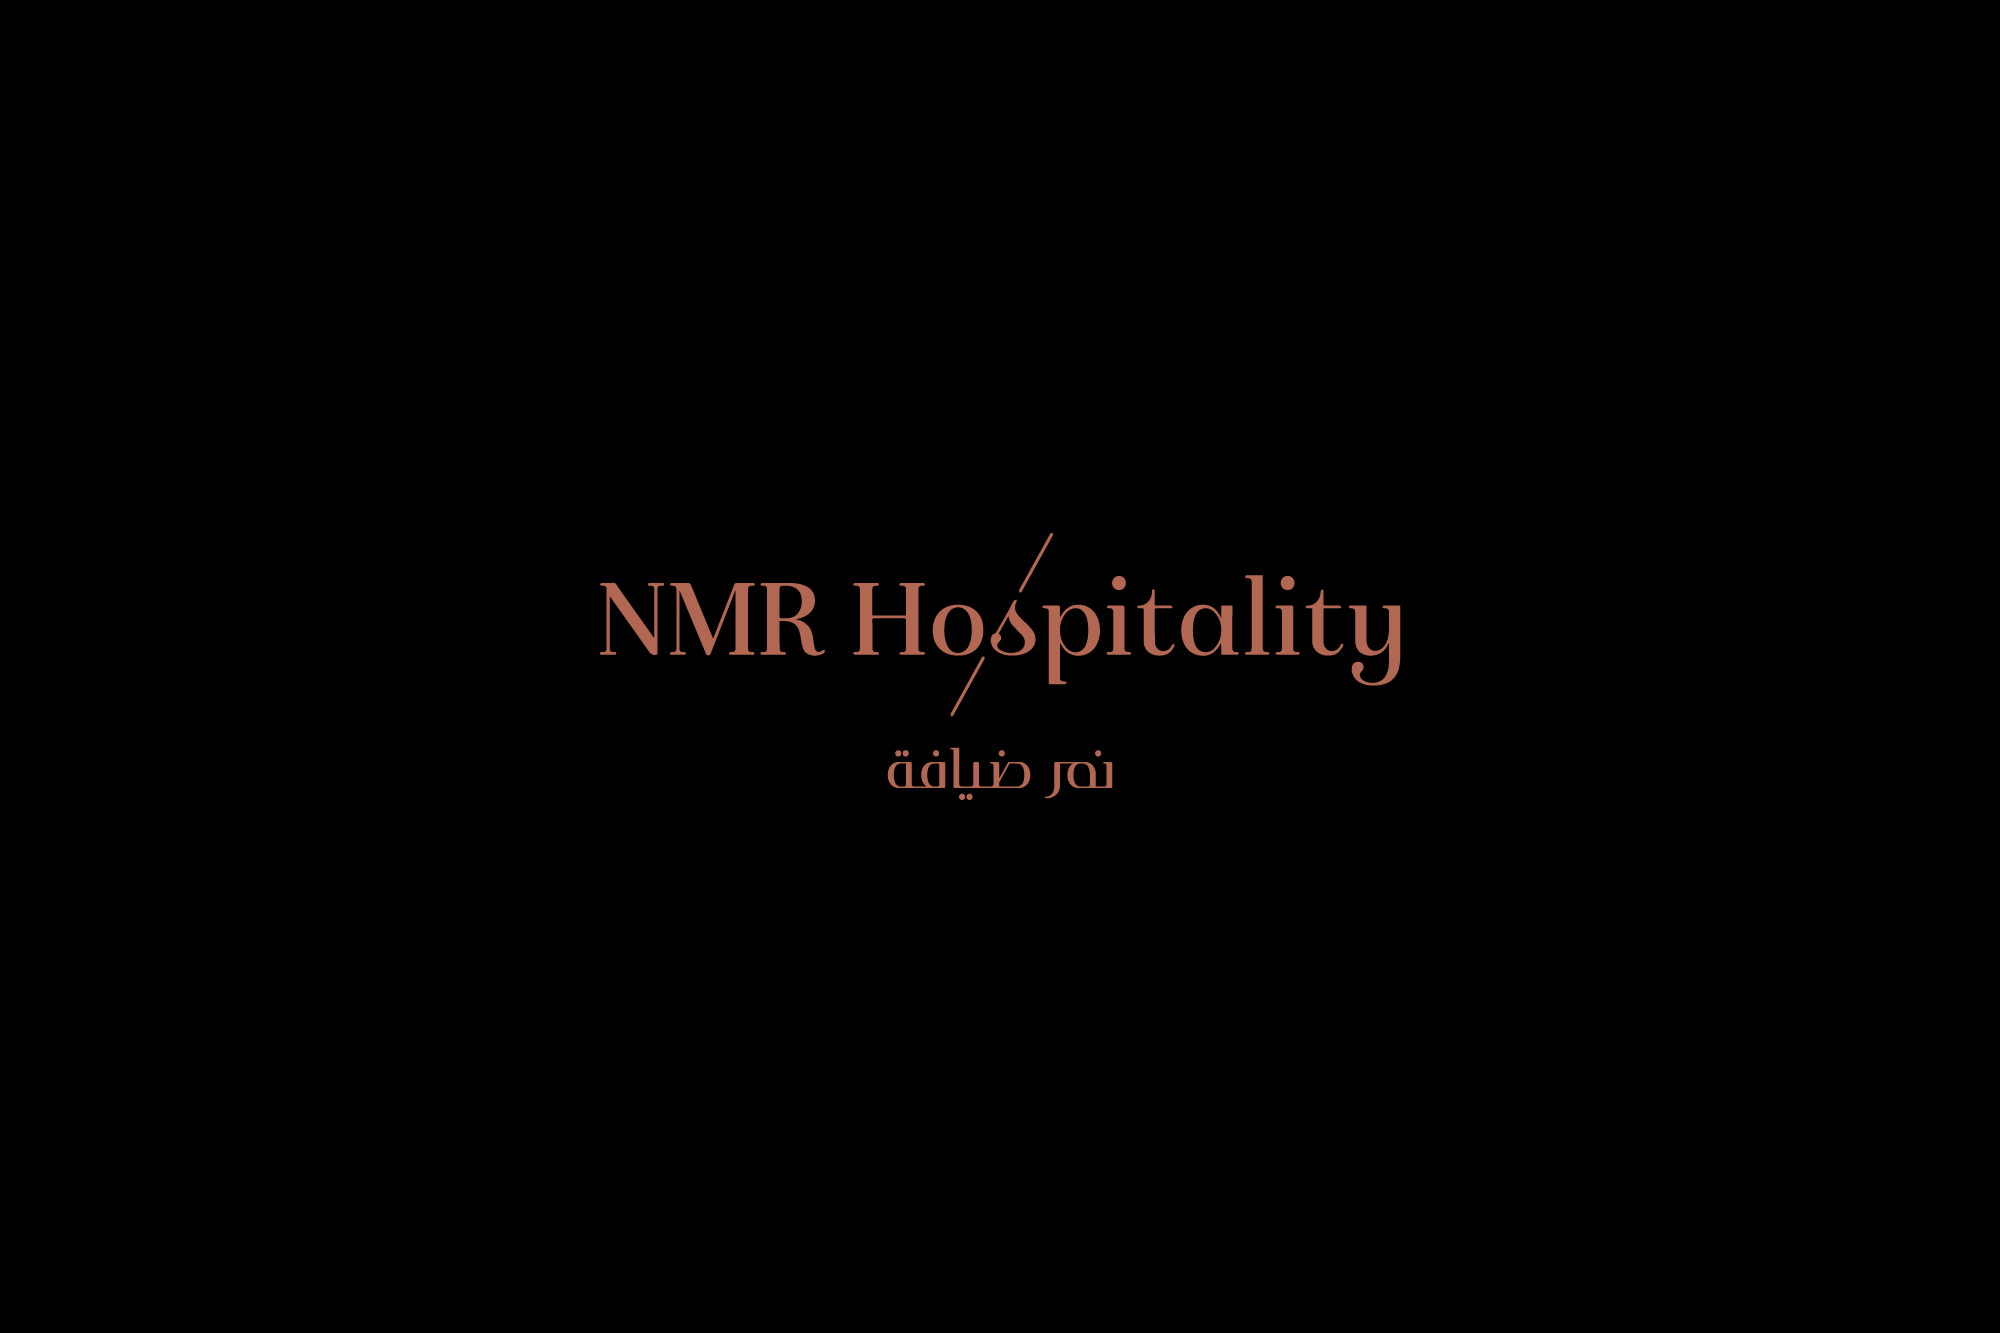 NMR_Hospitality_Logo copy 2